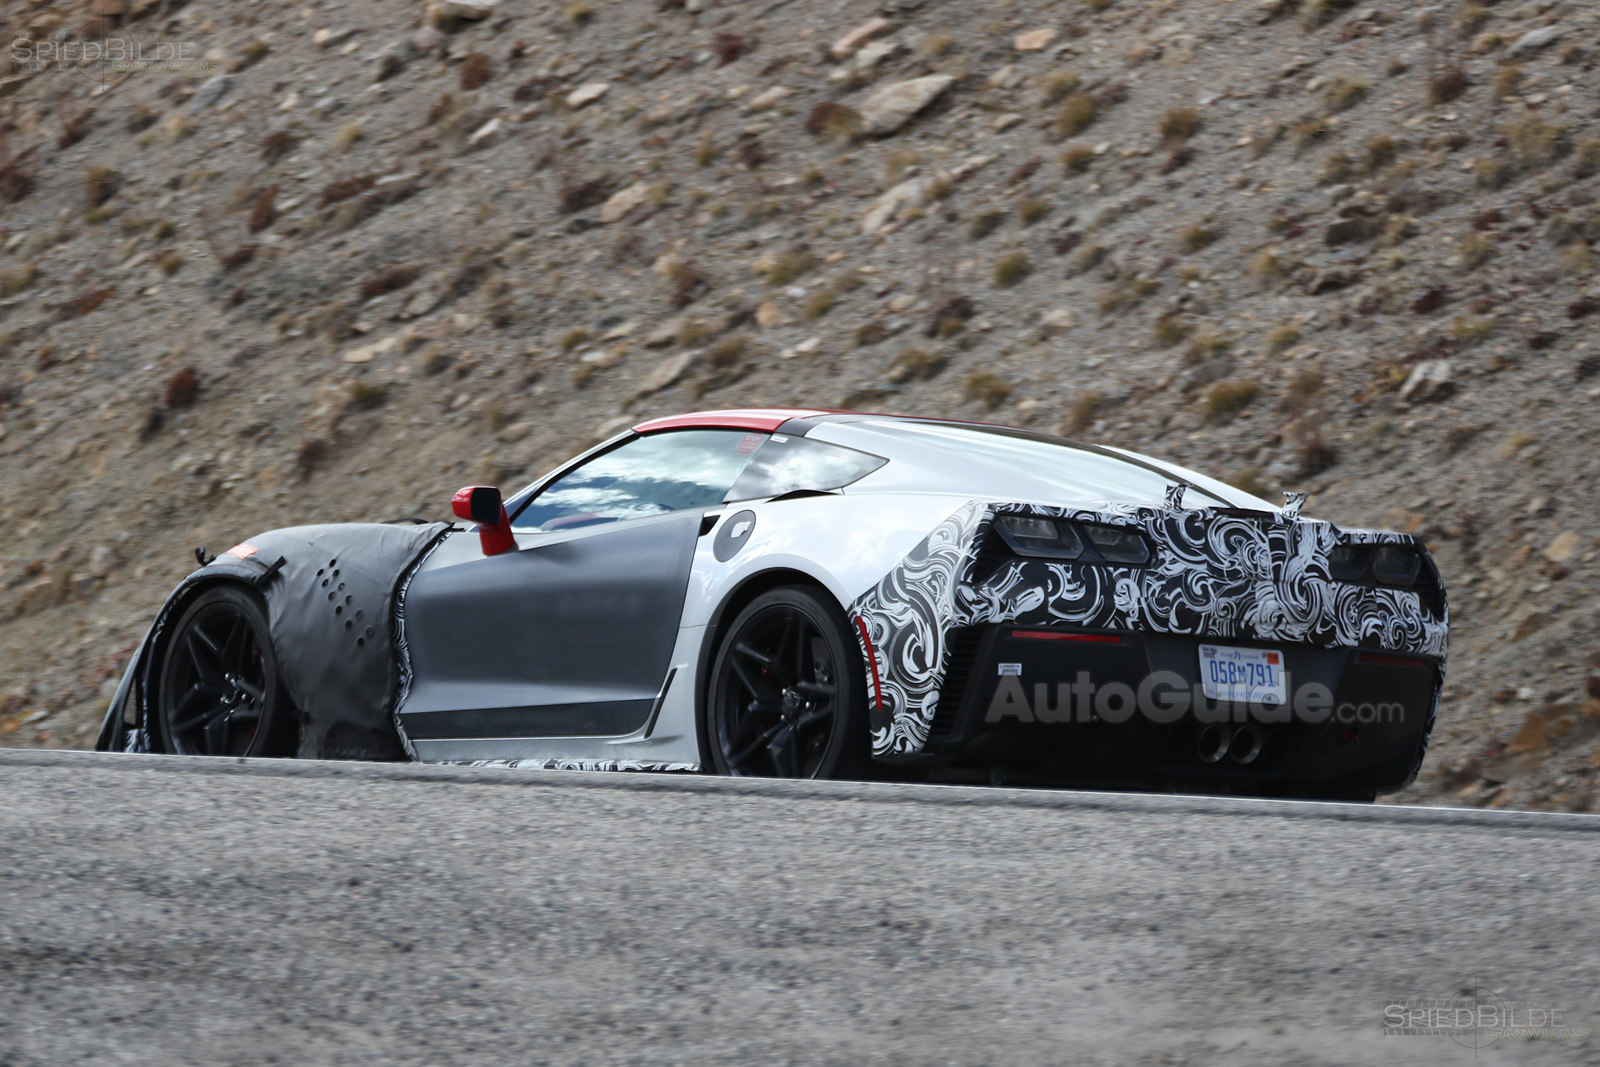 2018 chevrolet corvette zr1 spied testing with aggressive styling